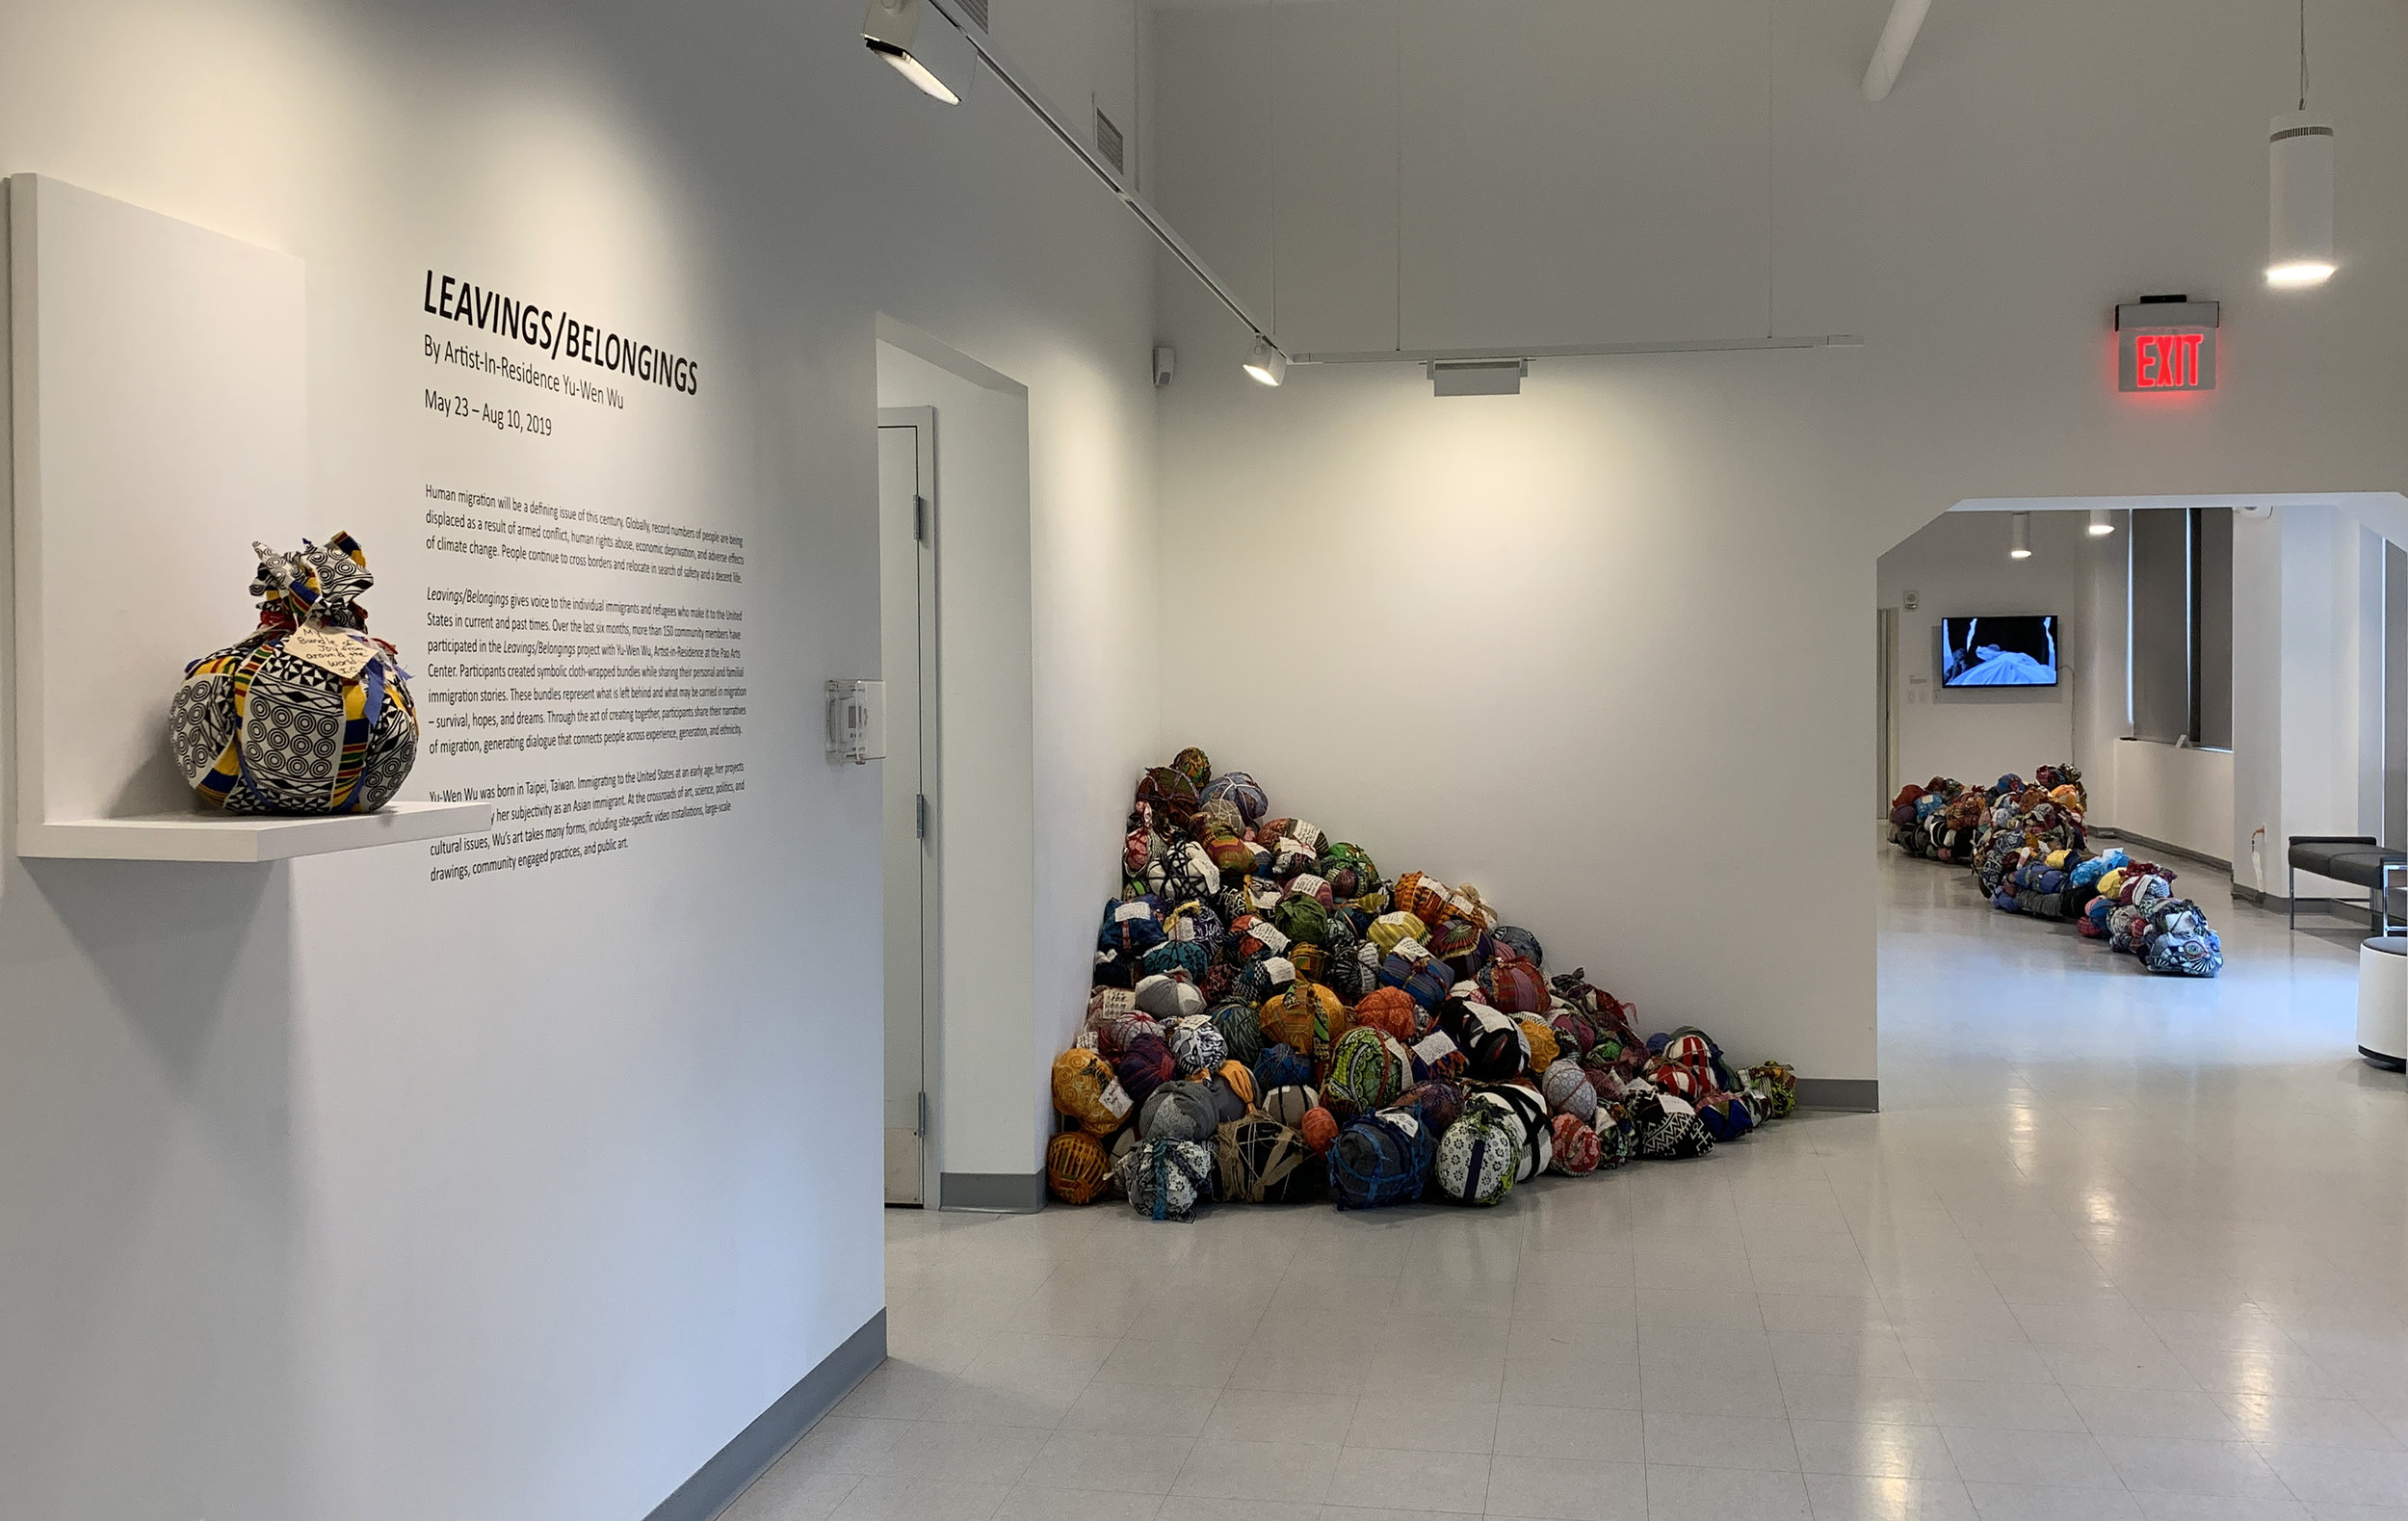 LEAVINGS/BELONGINGS (installation view)